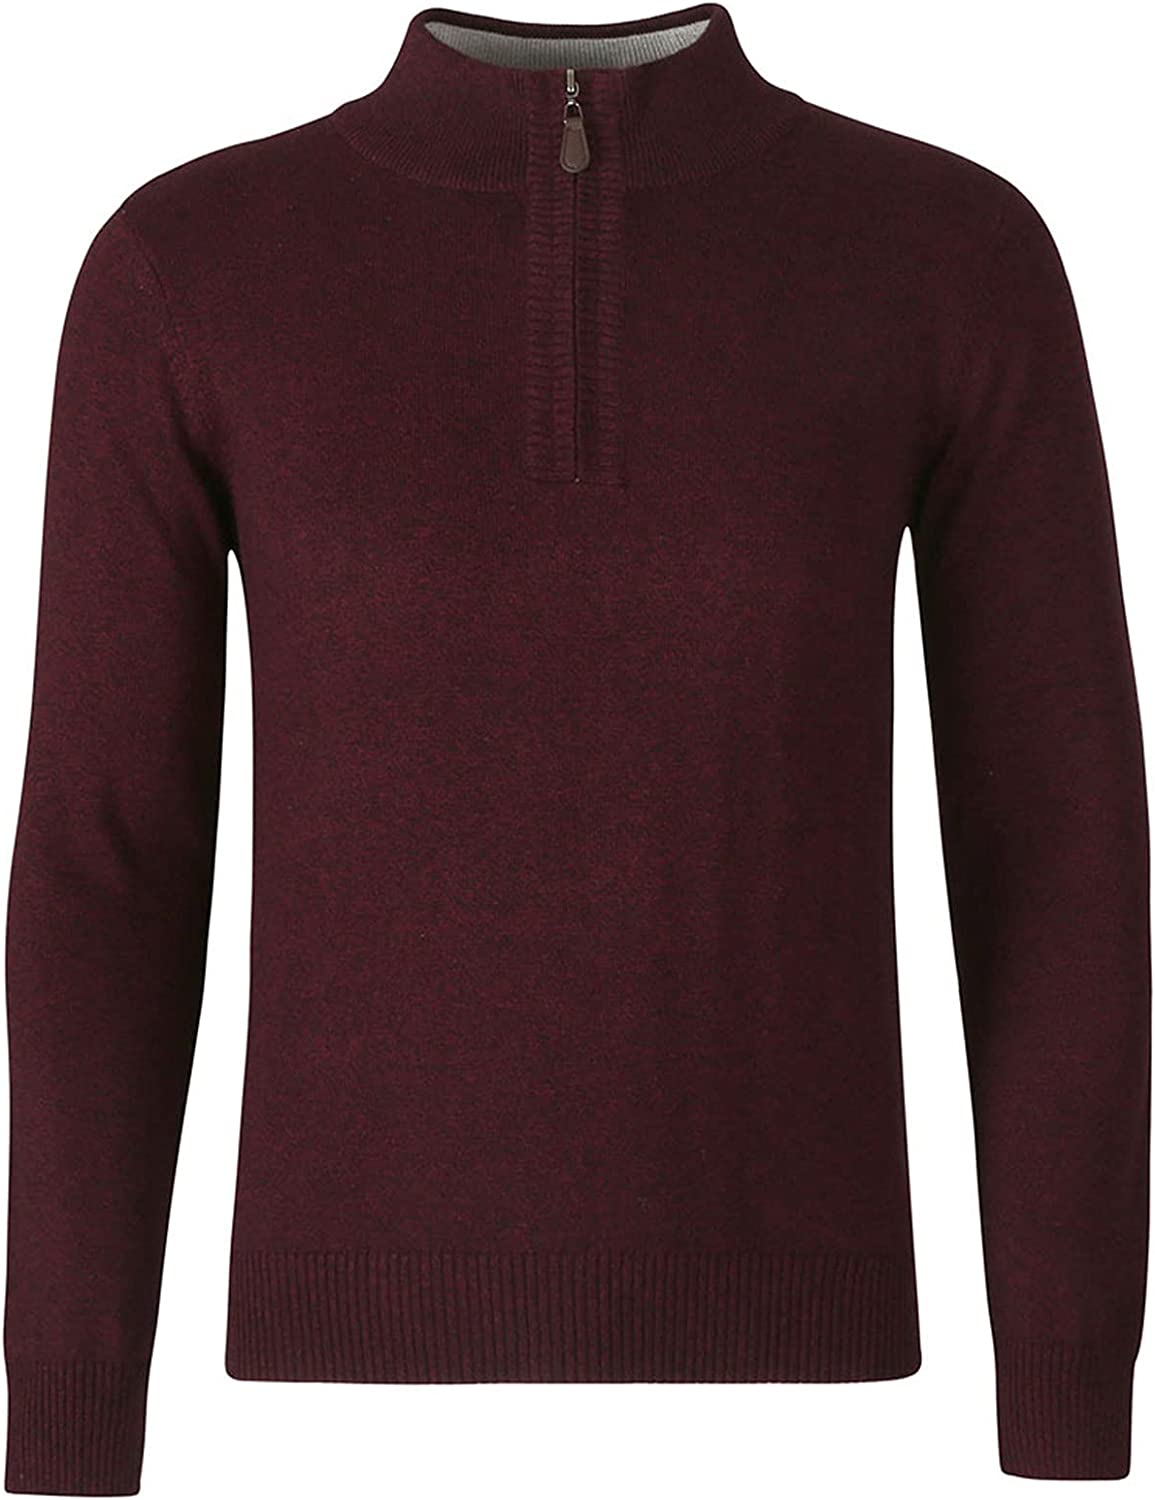 Men's Casual Warm Turtleneck Sweaters Winter 1/4 Zip Knitted Work Tops Long Sleeve Ribbed Pullover Sweater